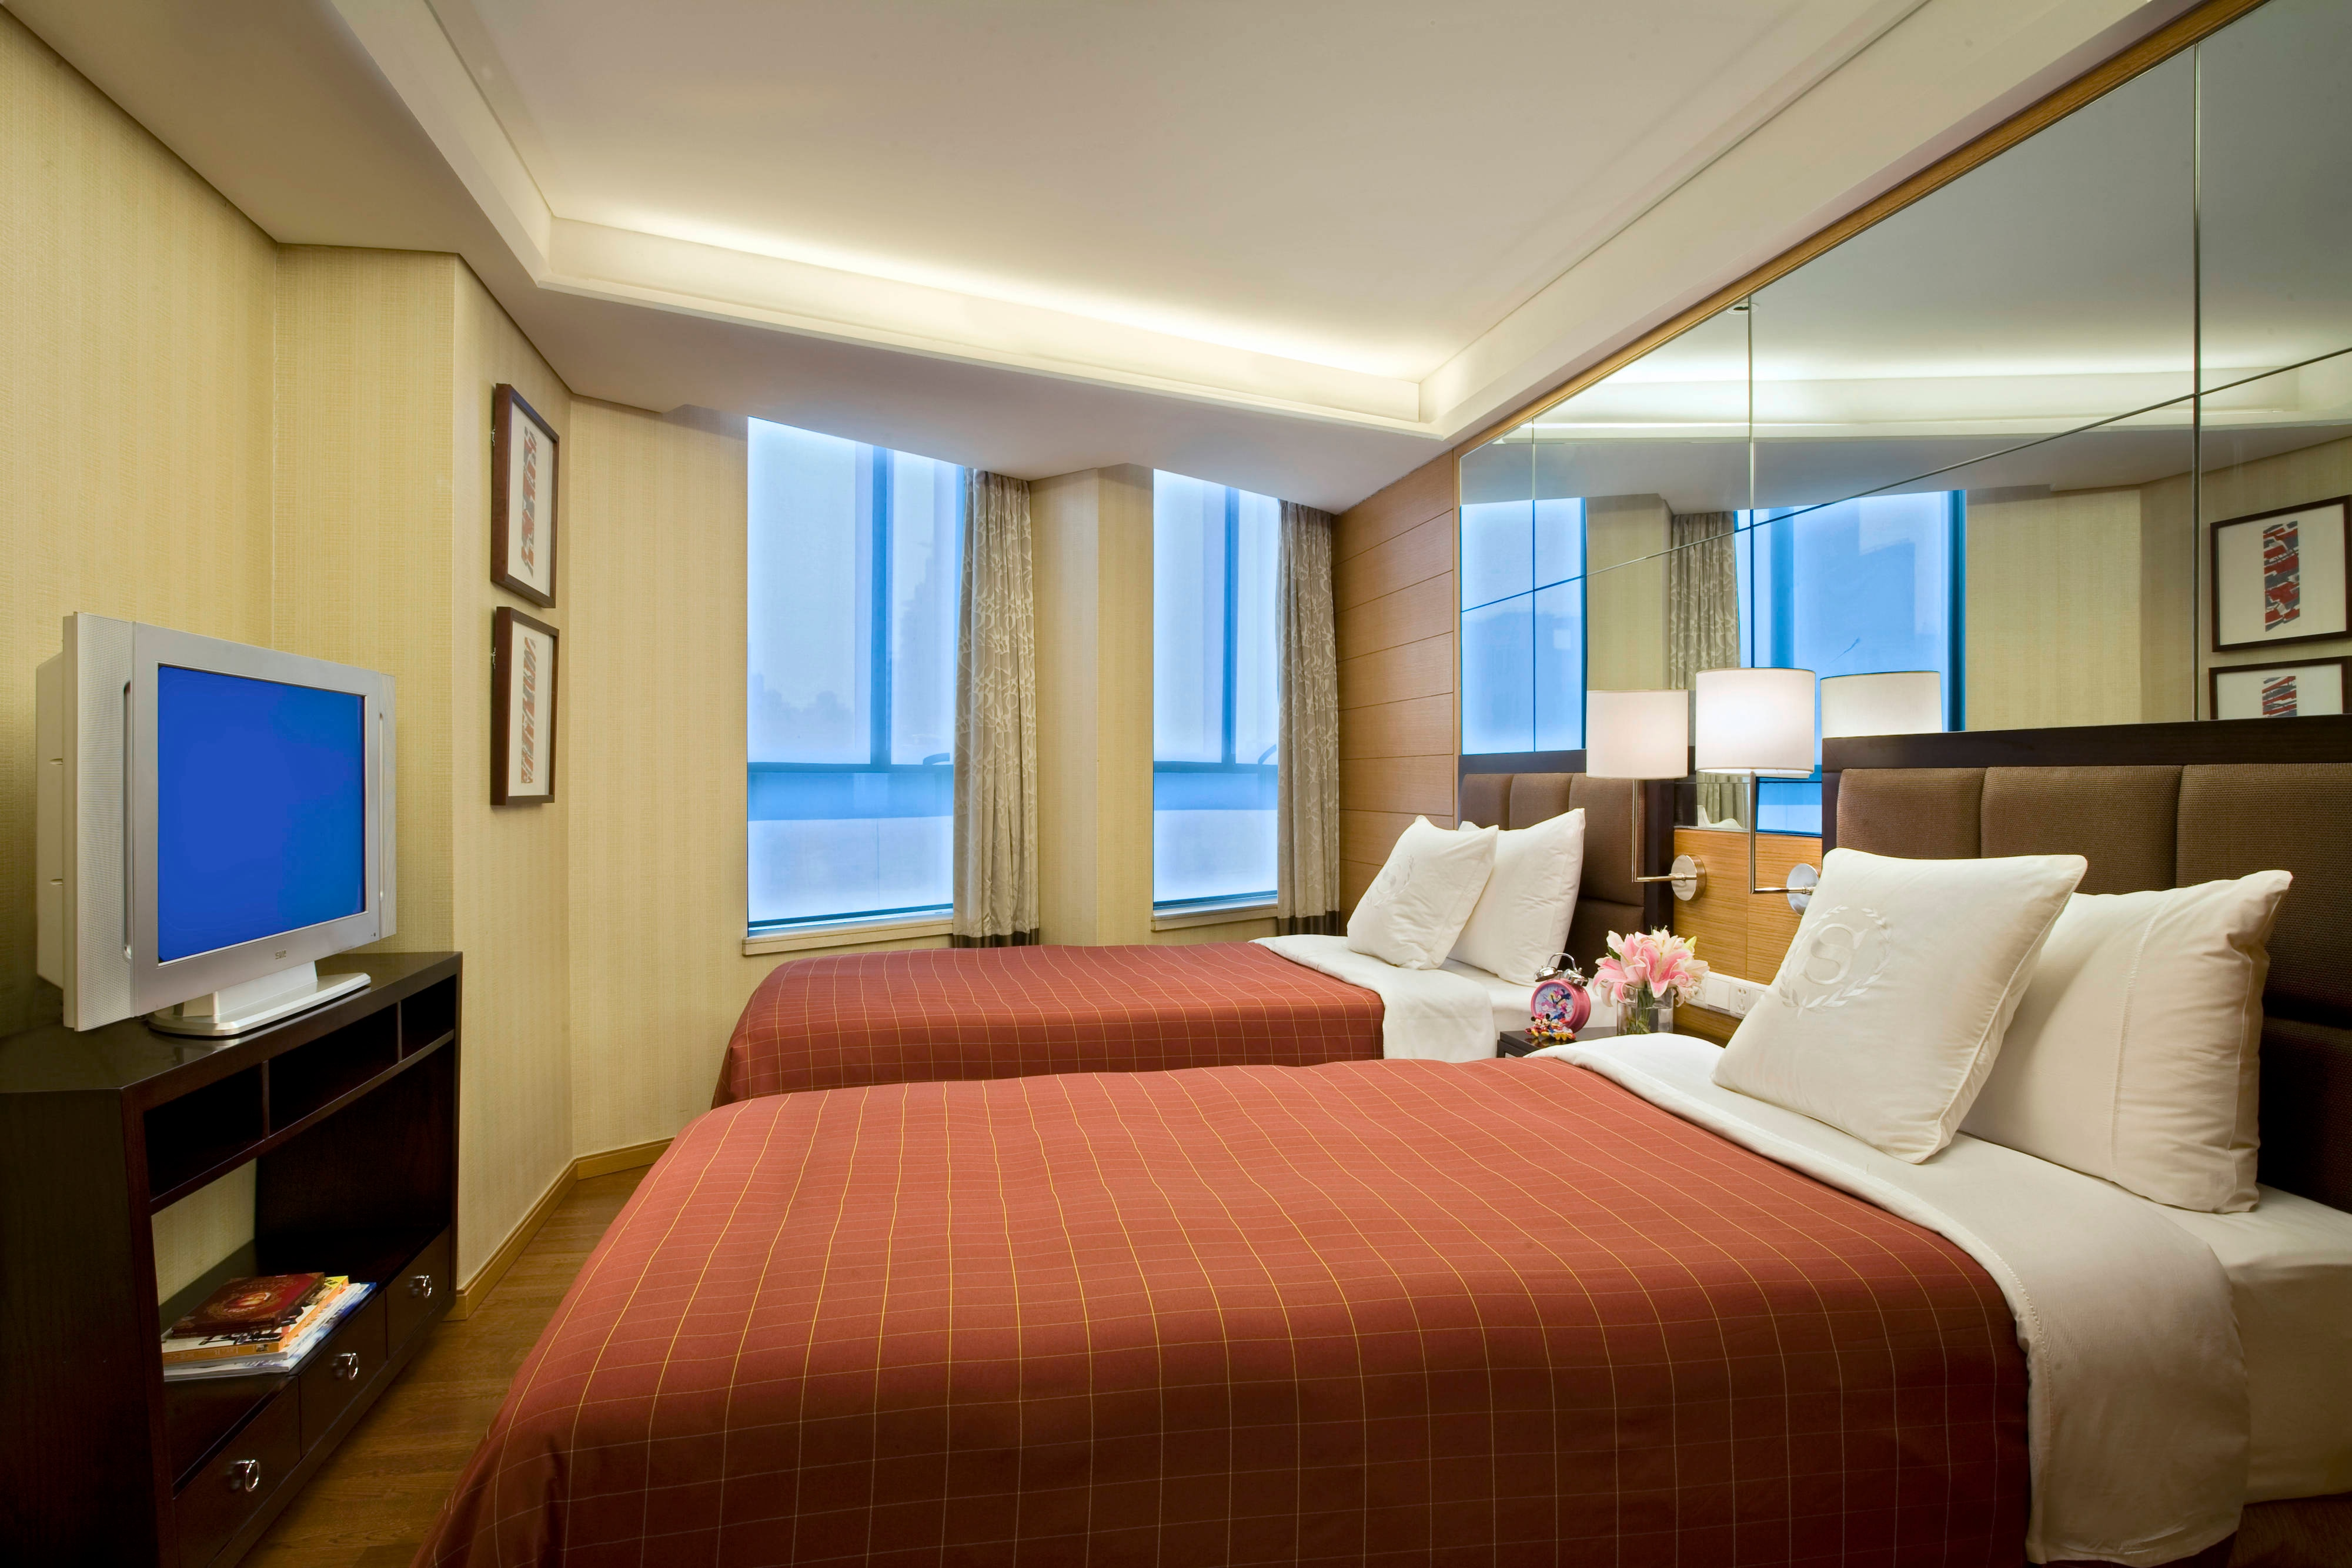 Residence - Family Suite - Twin Room with City View